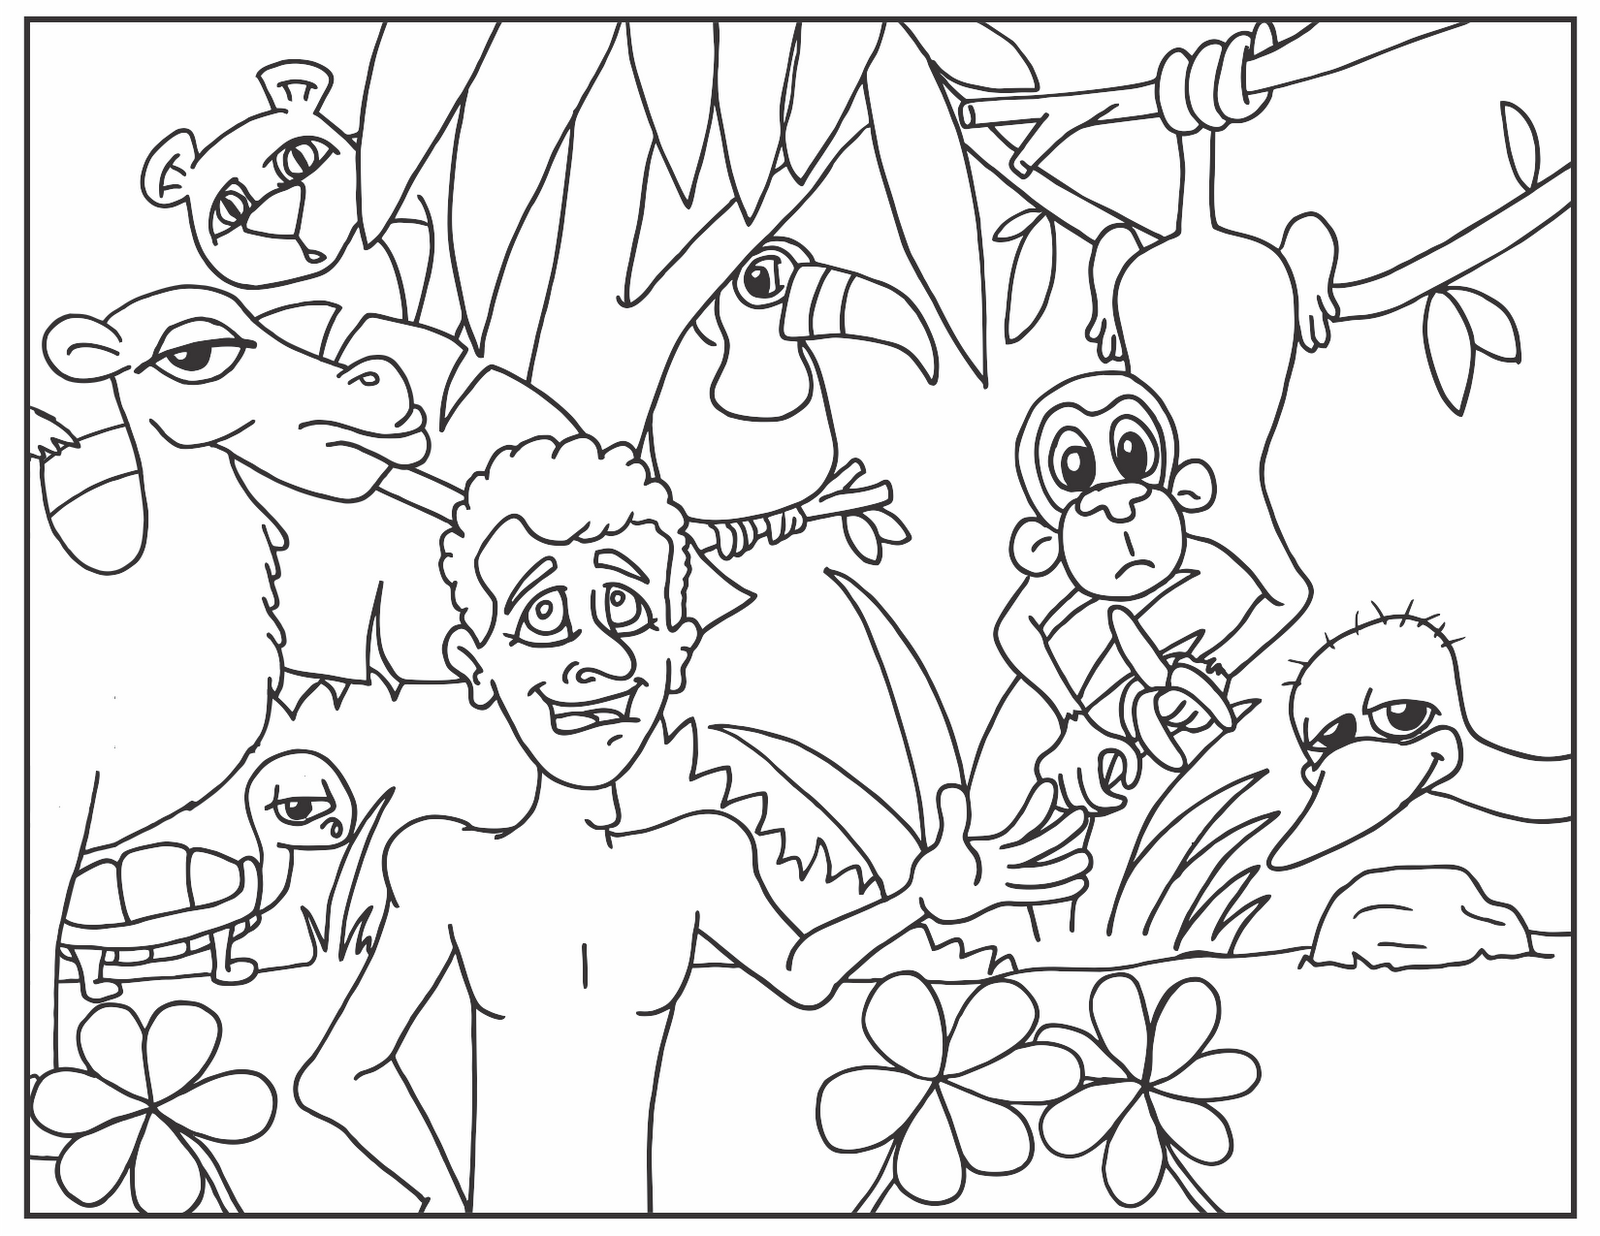 Outdoor - Coloring Pages For Kids And For Adults - Coloring Home